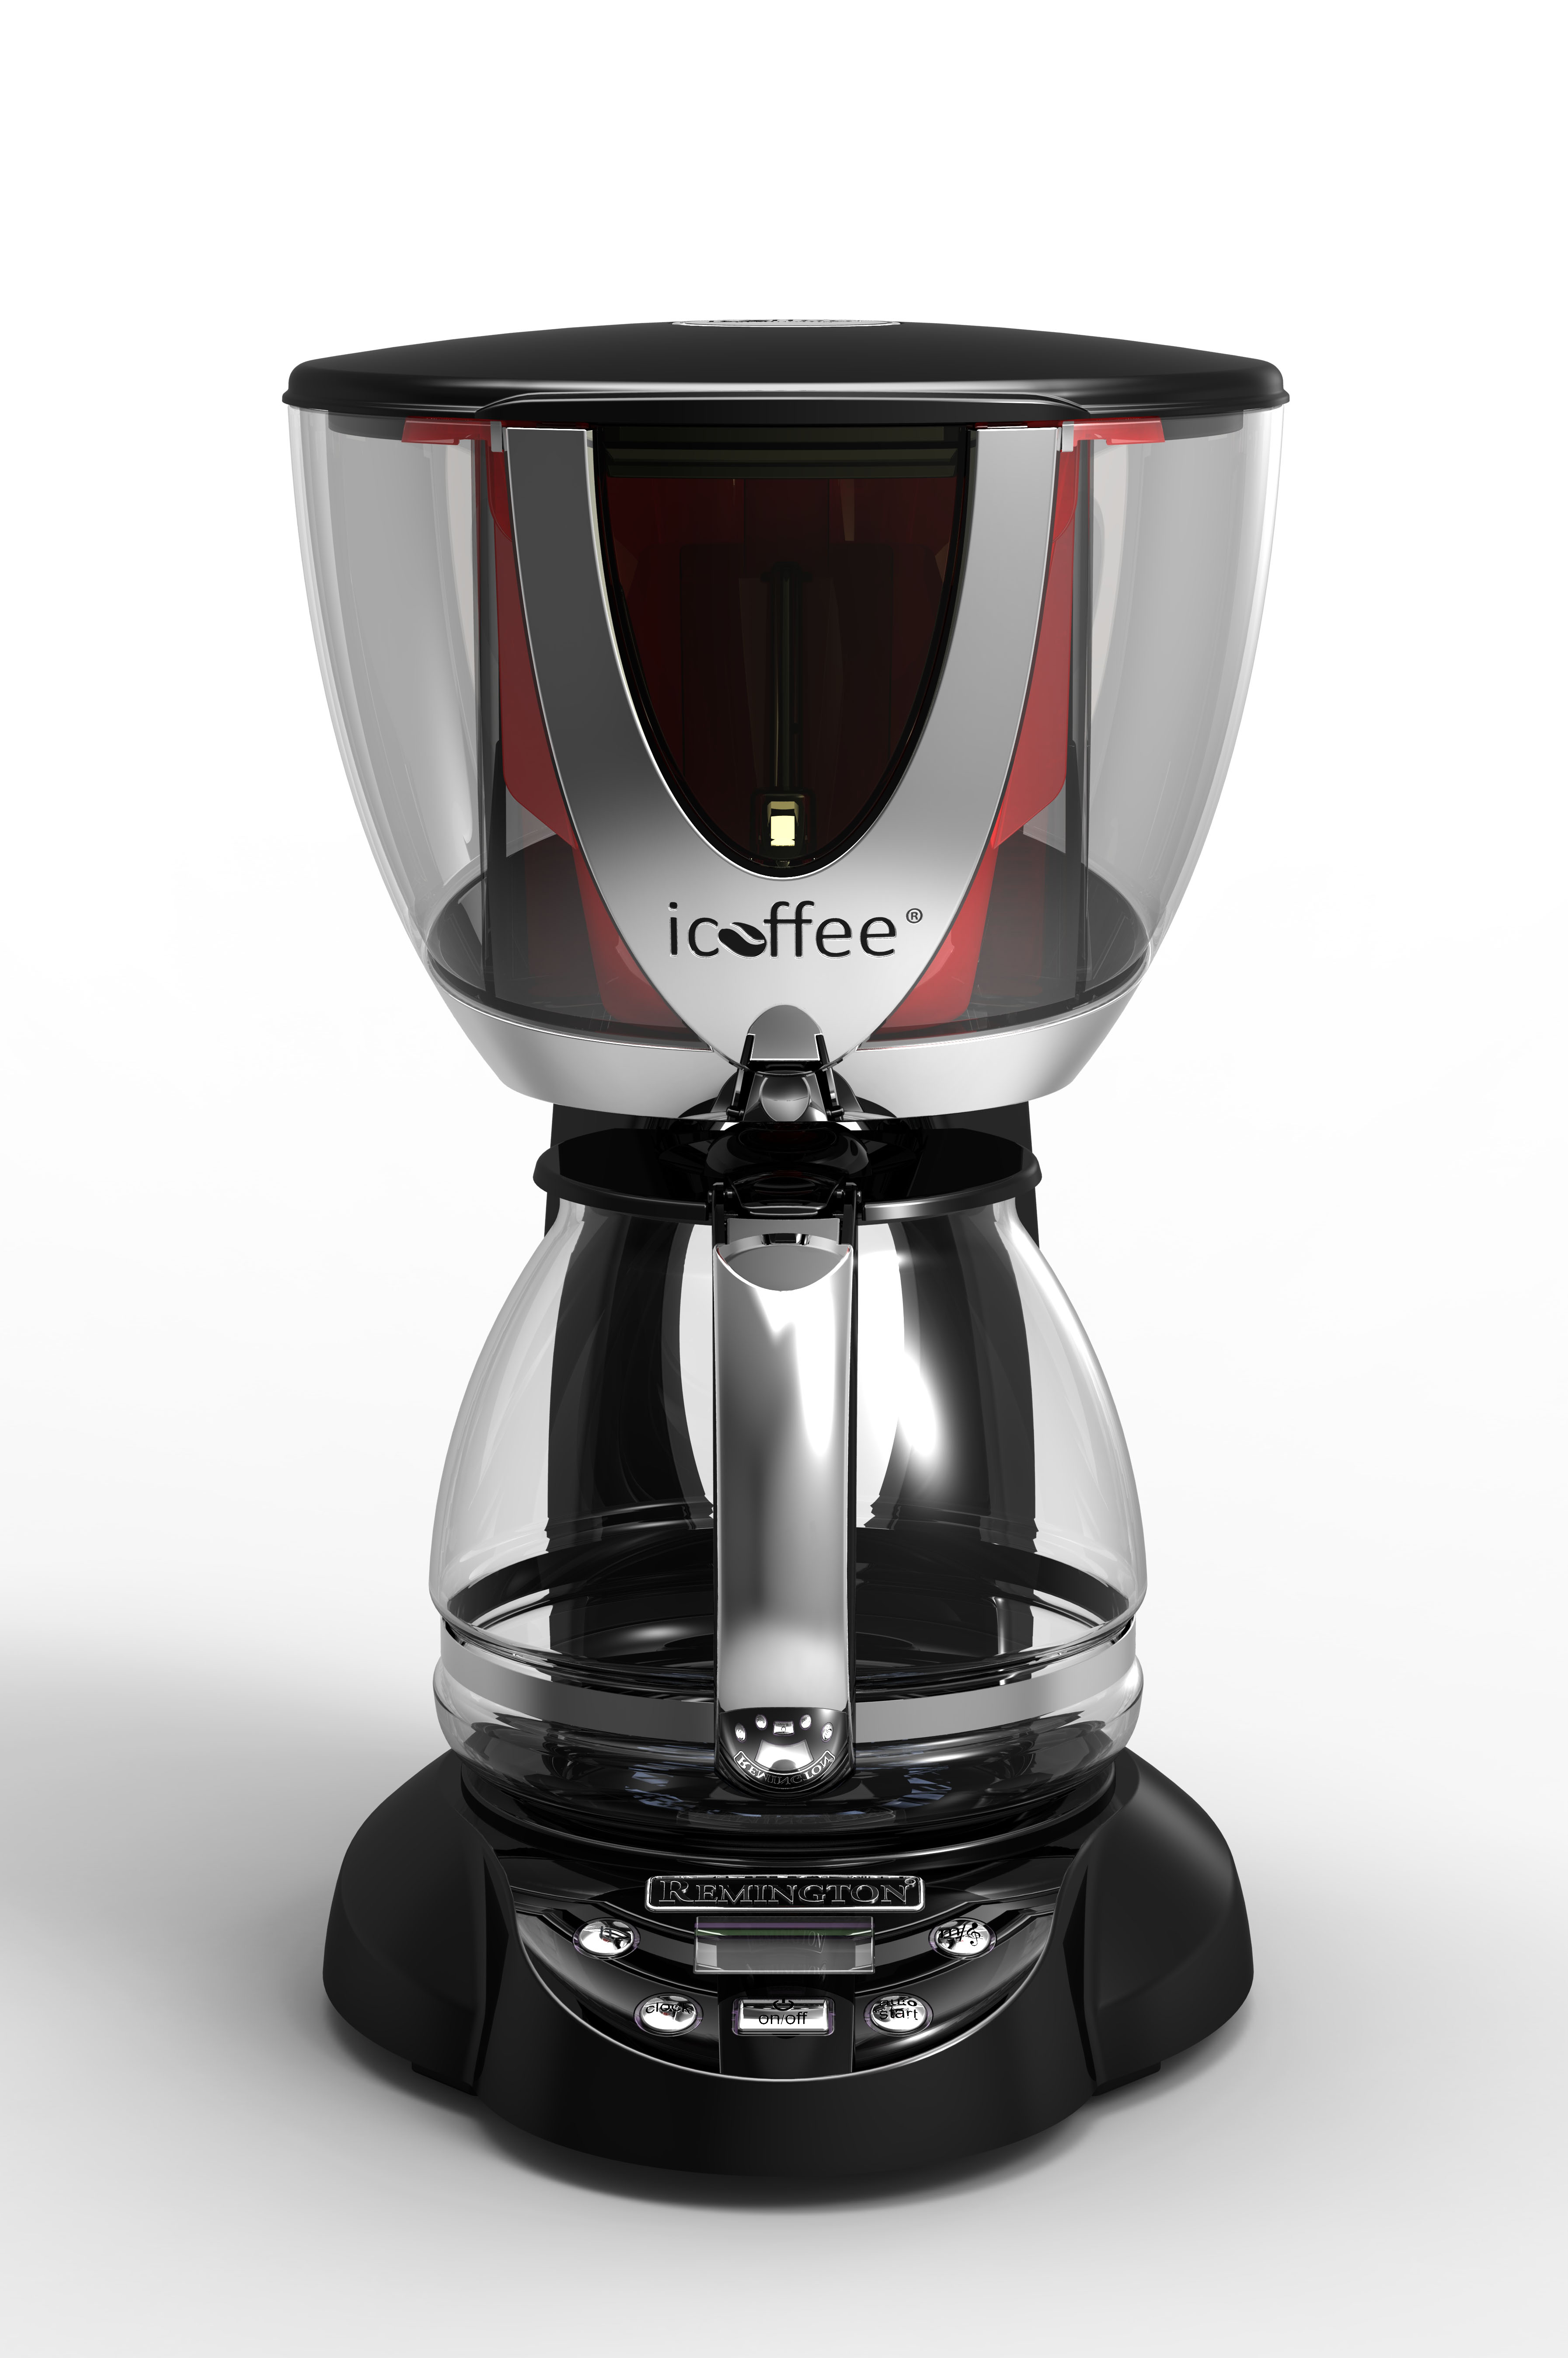 Remington I Coffee Maker Reviews : iCoffee Uses Steam Brewing for Flavorful Coffee Viewpoints Articles